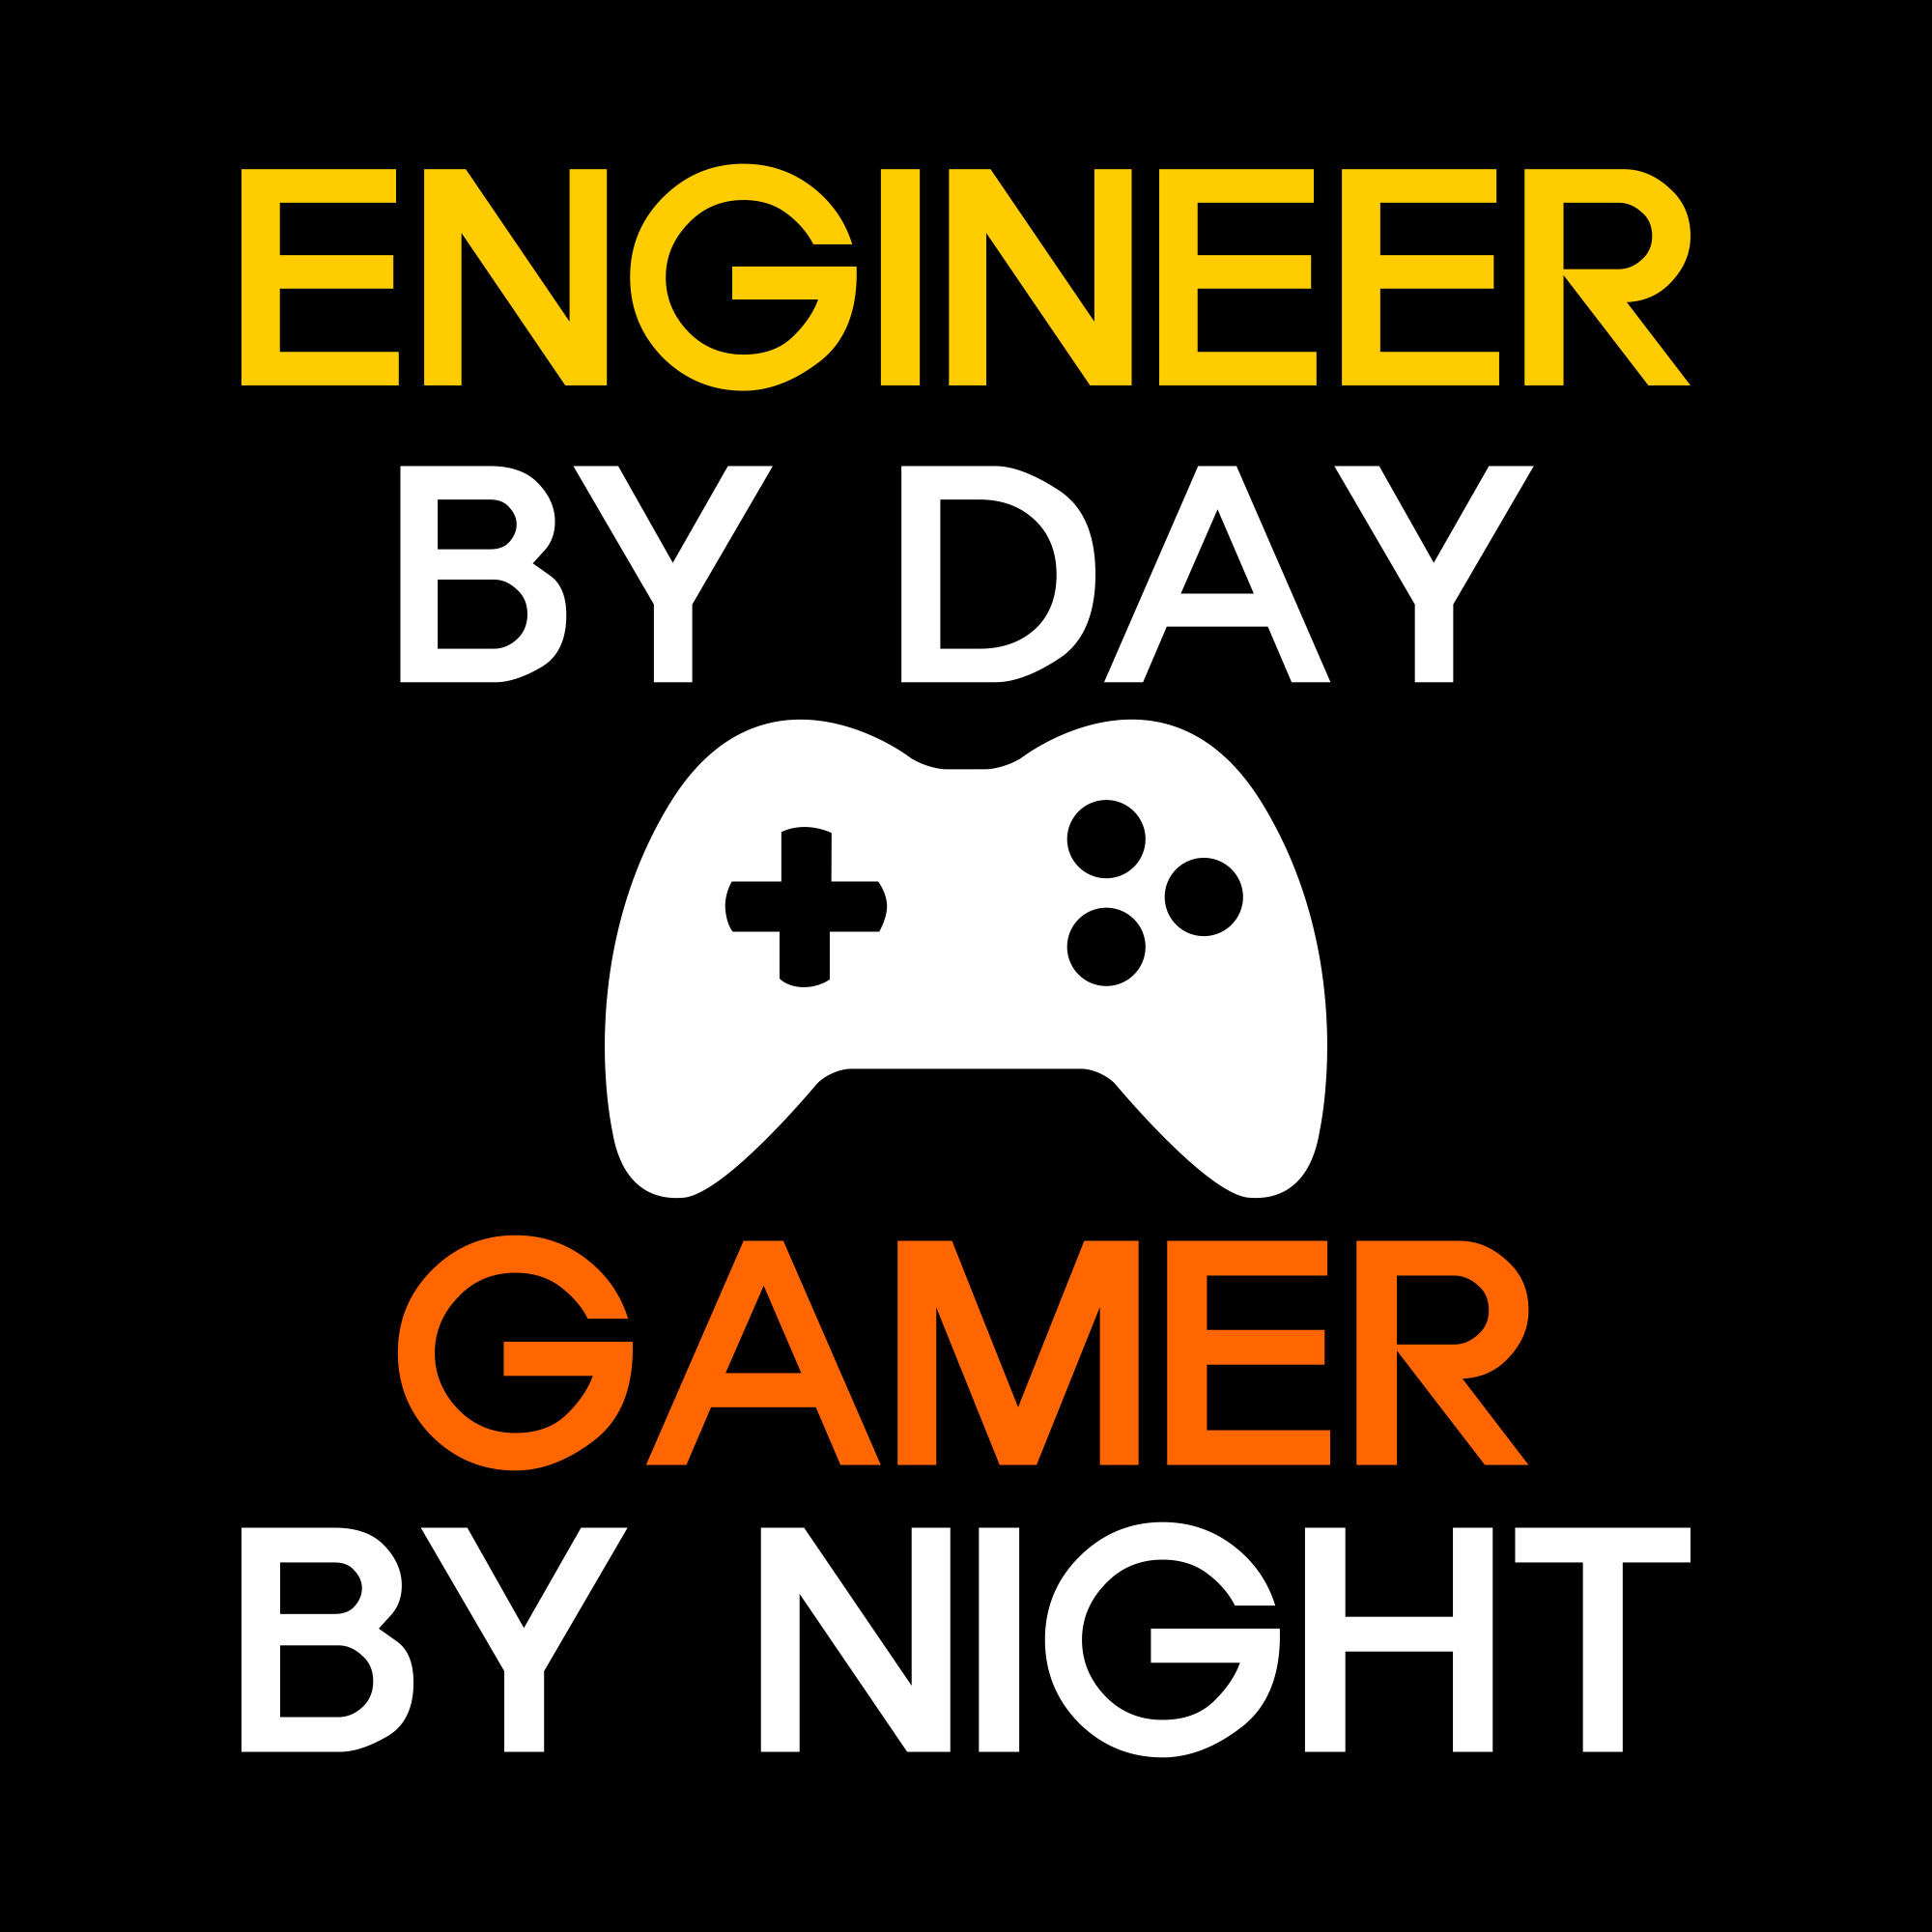 Engineer By Day Gamer By Night Gamer Quotes Engineering Humor Engineering